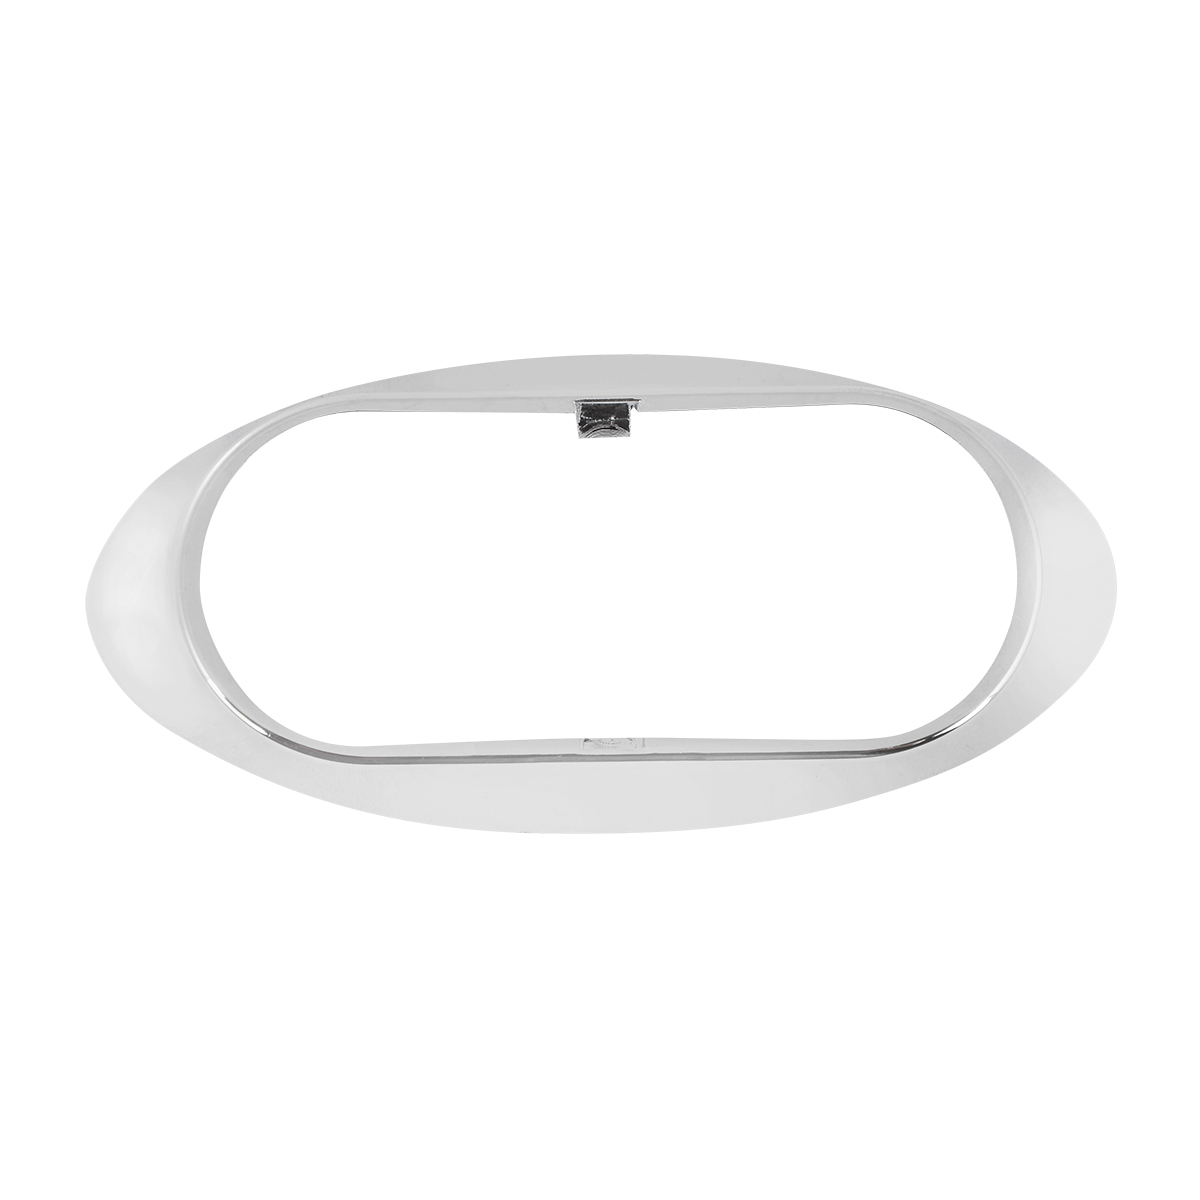 80005 Bezel for Small Oval LED Marker Light